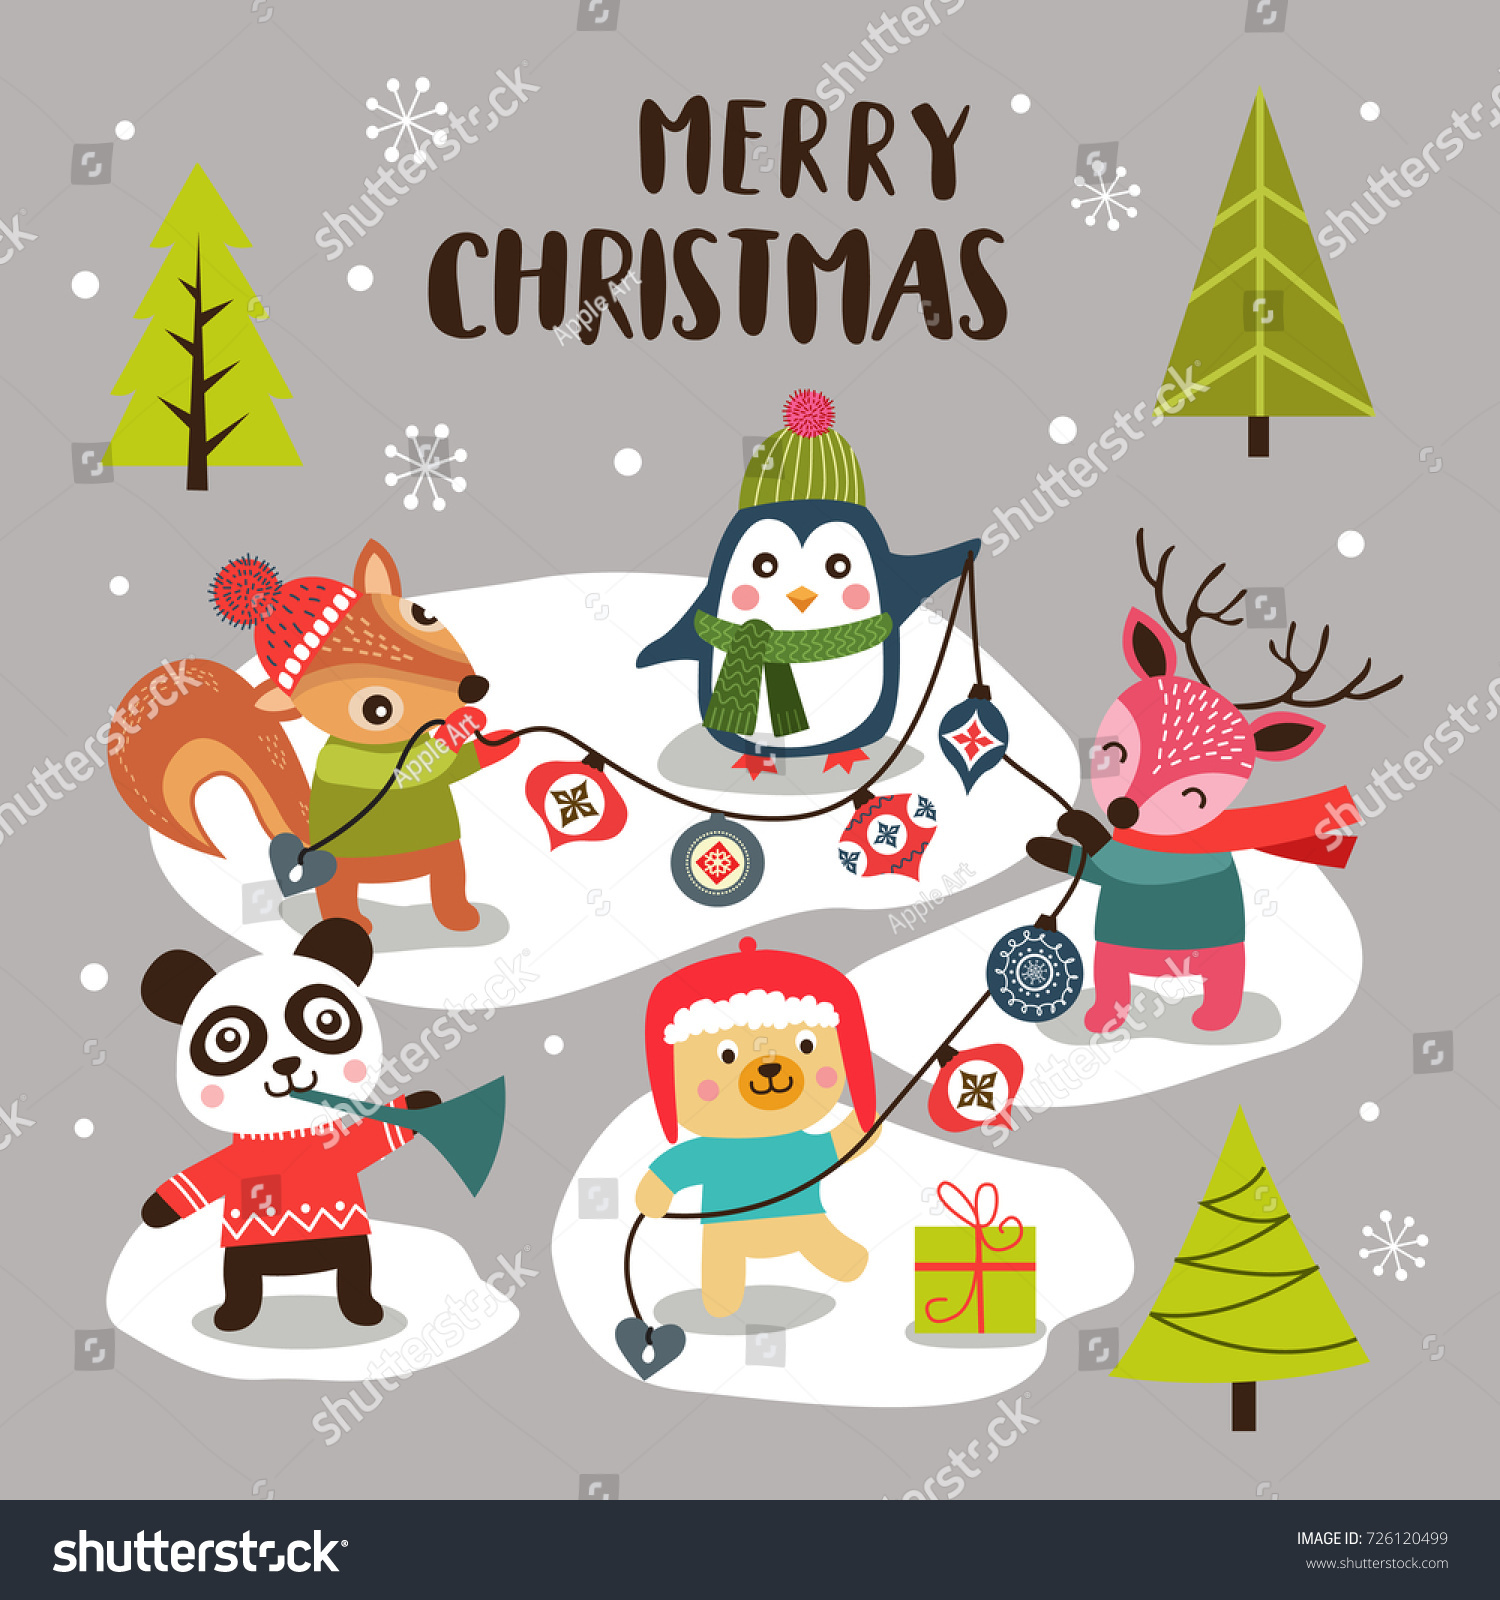 Merry Christmas Background Cute Cartoon Animals Stock